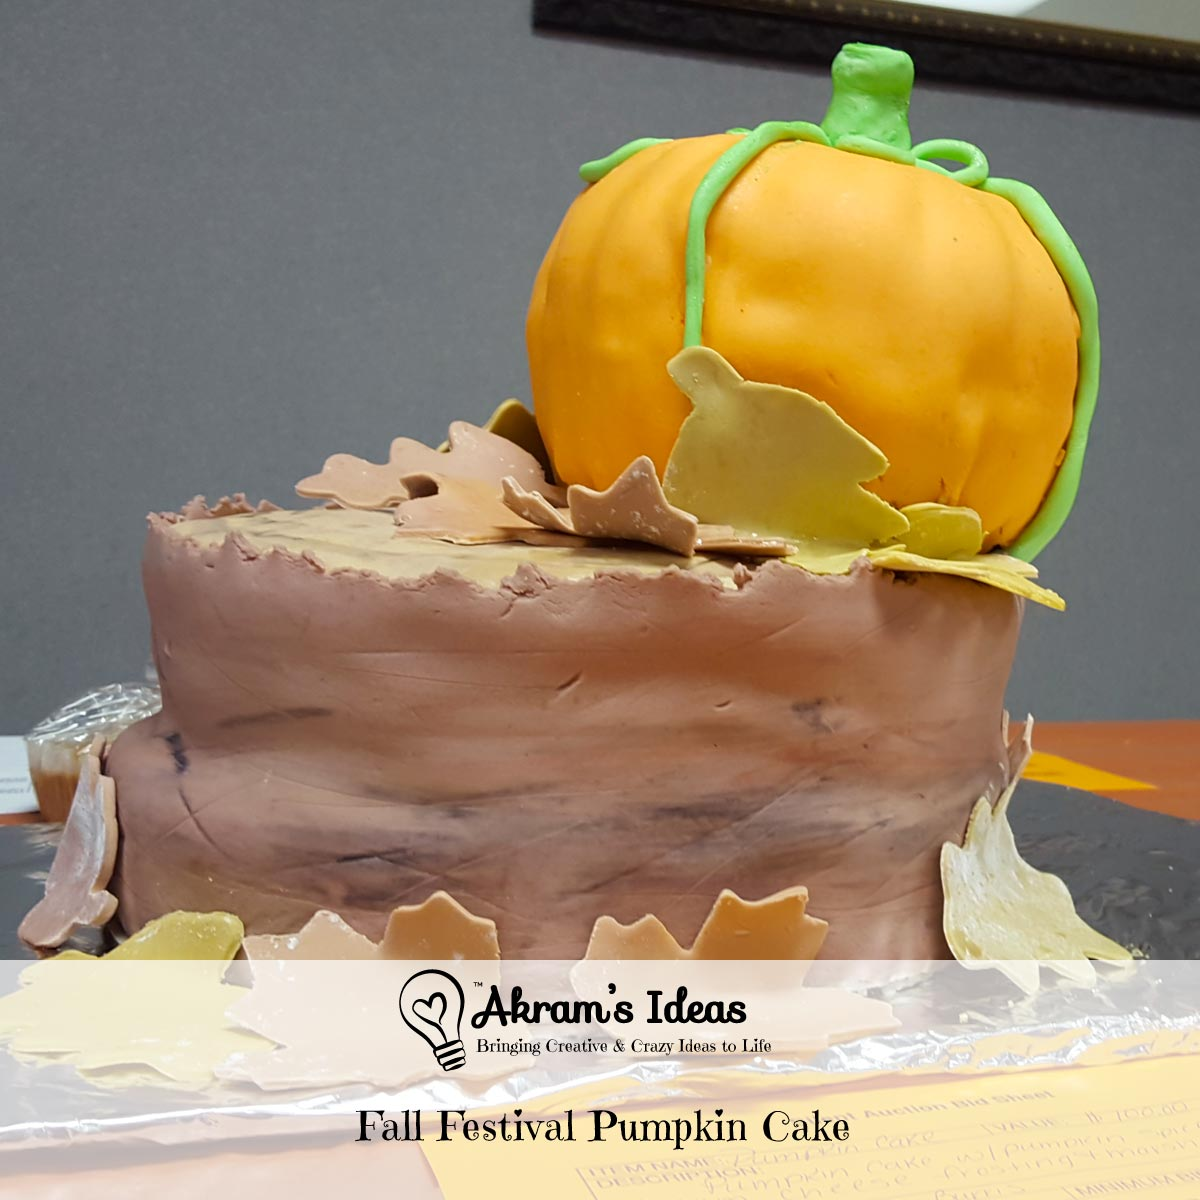 Akram's Ideas : Fall Festival Pumpkin Cake